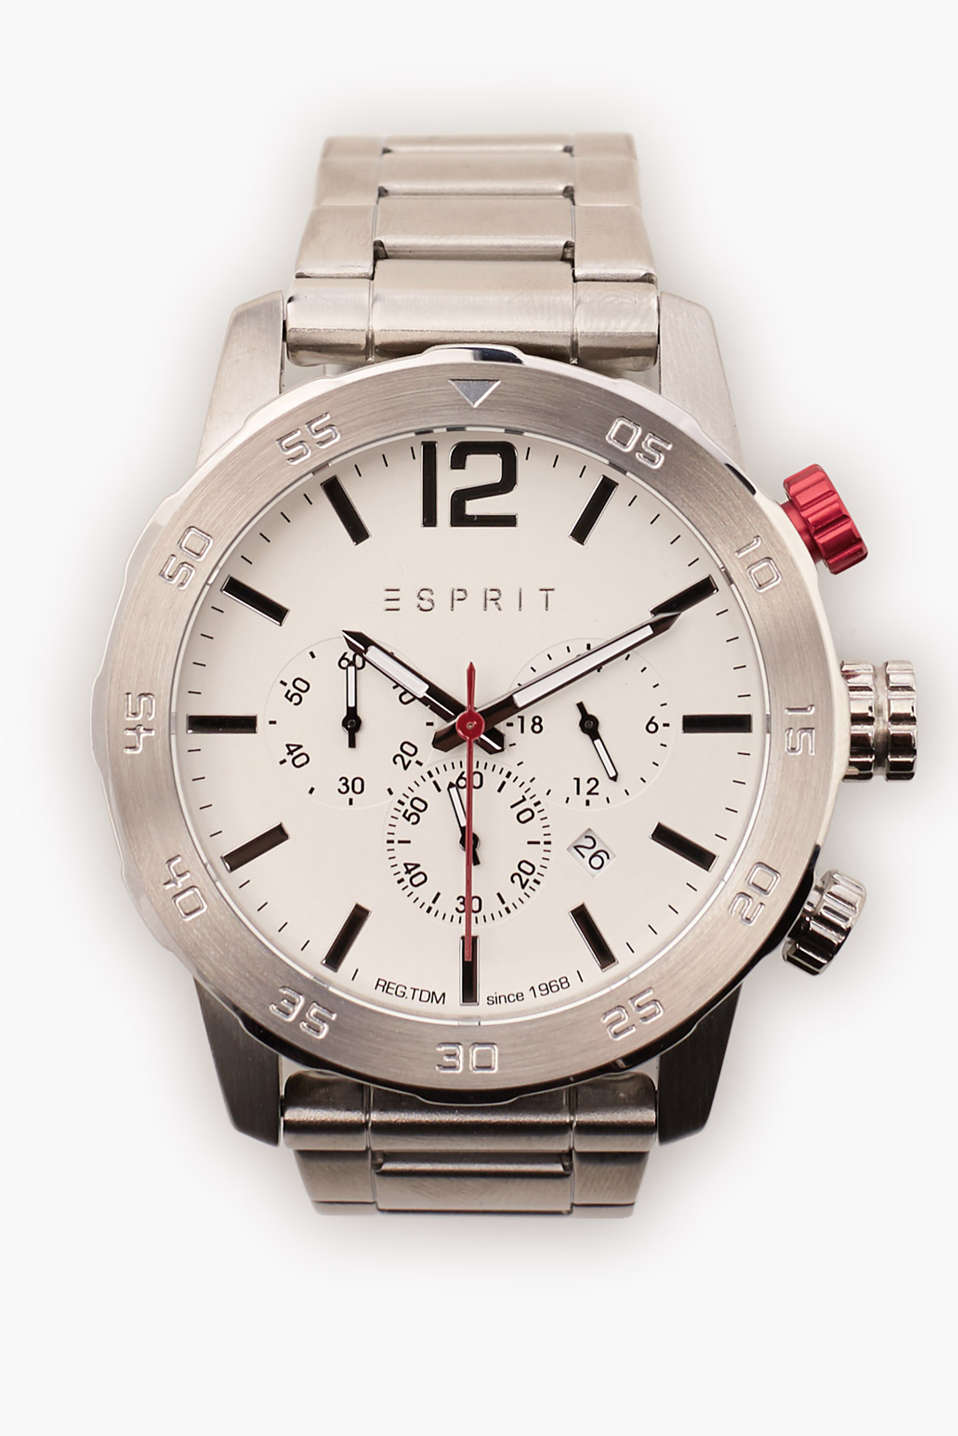 Chrono with a large casing, colourful details, date, stopwatch and 24 hour display, Ø approx. 48 mm